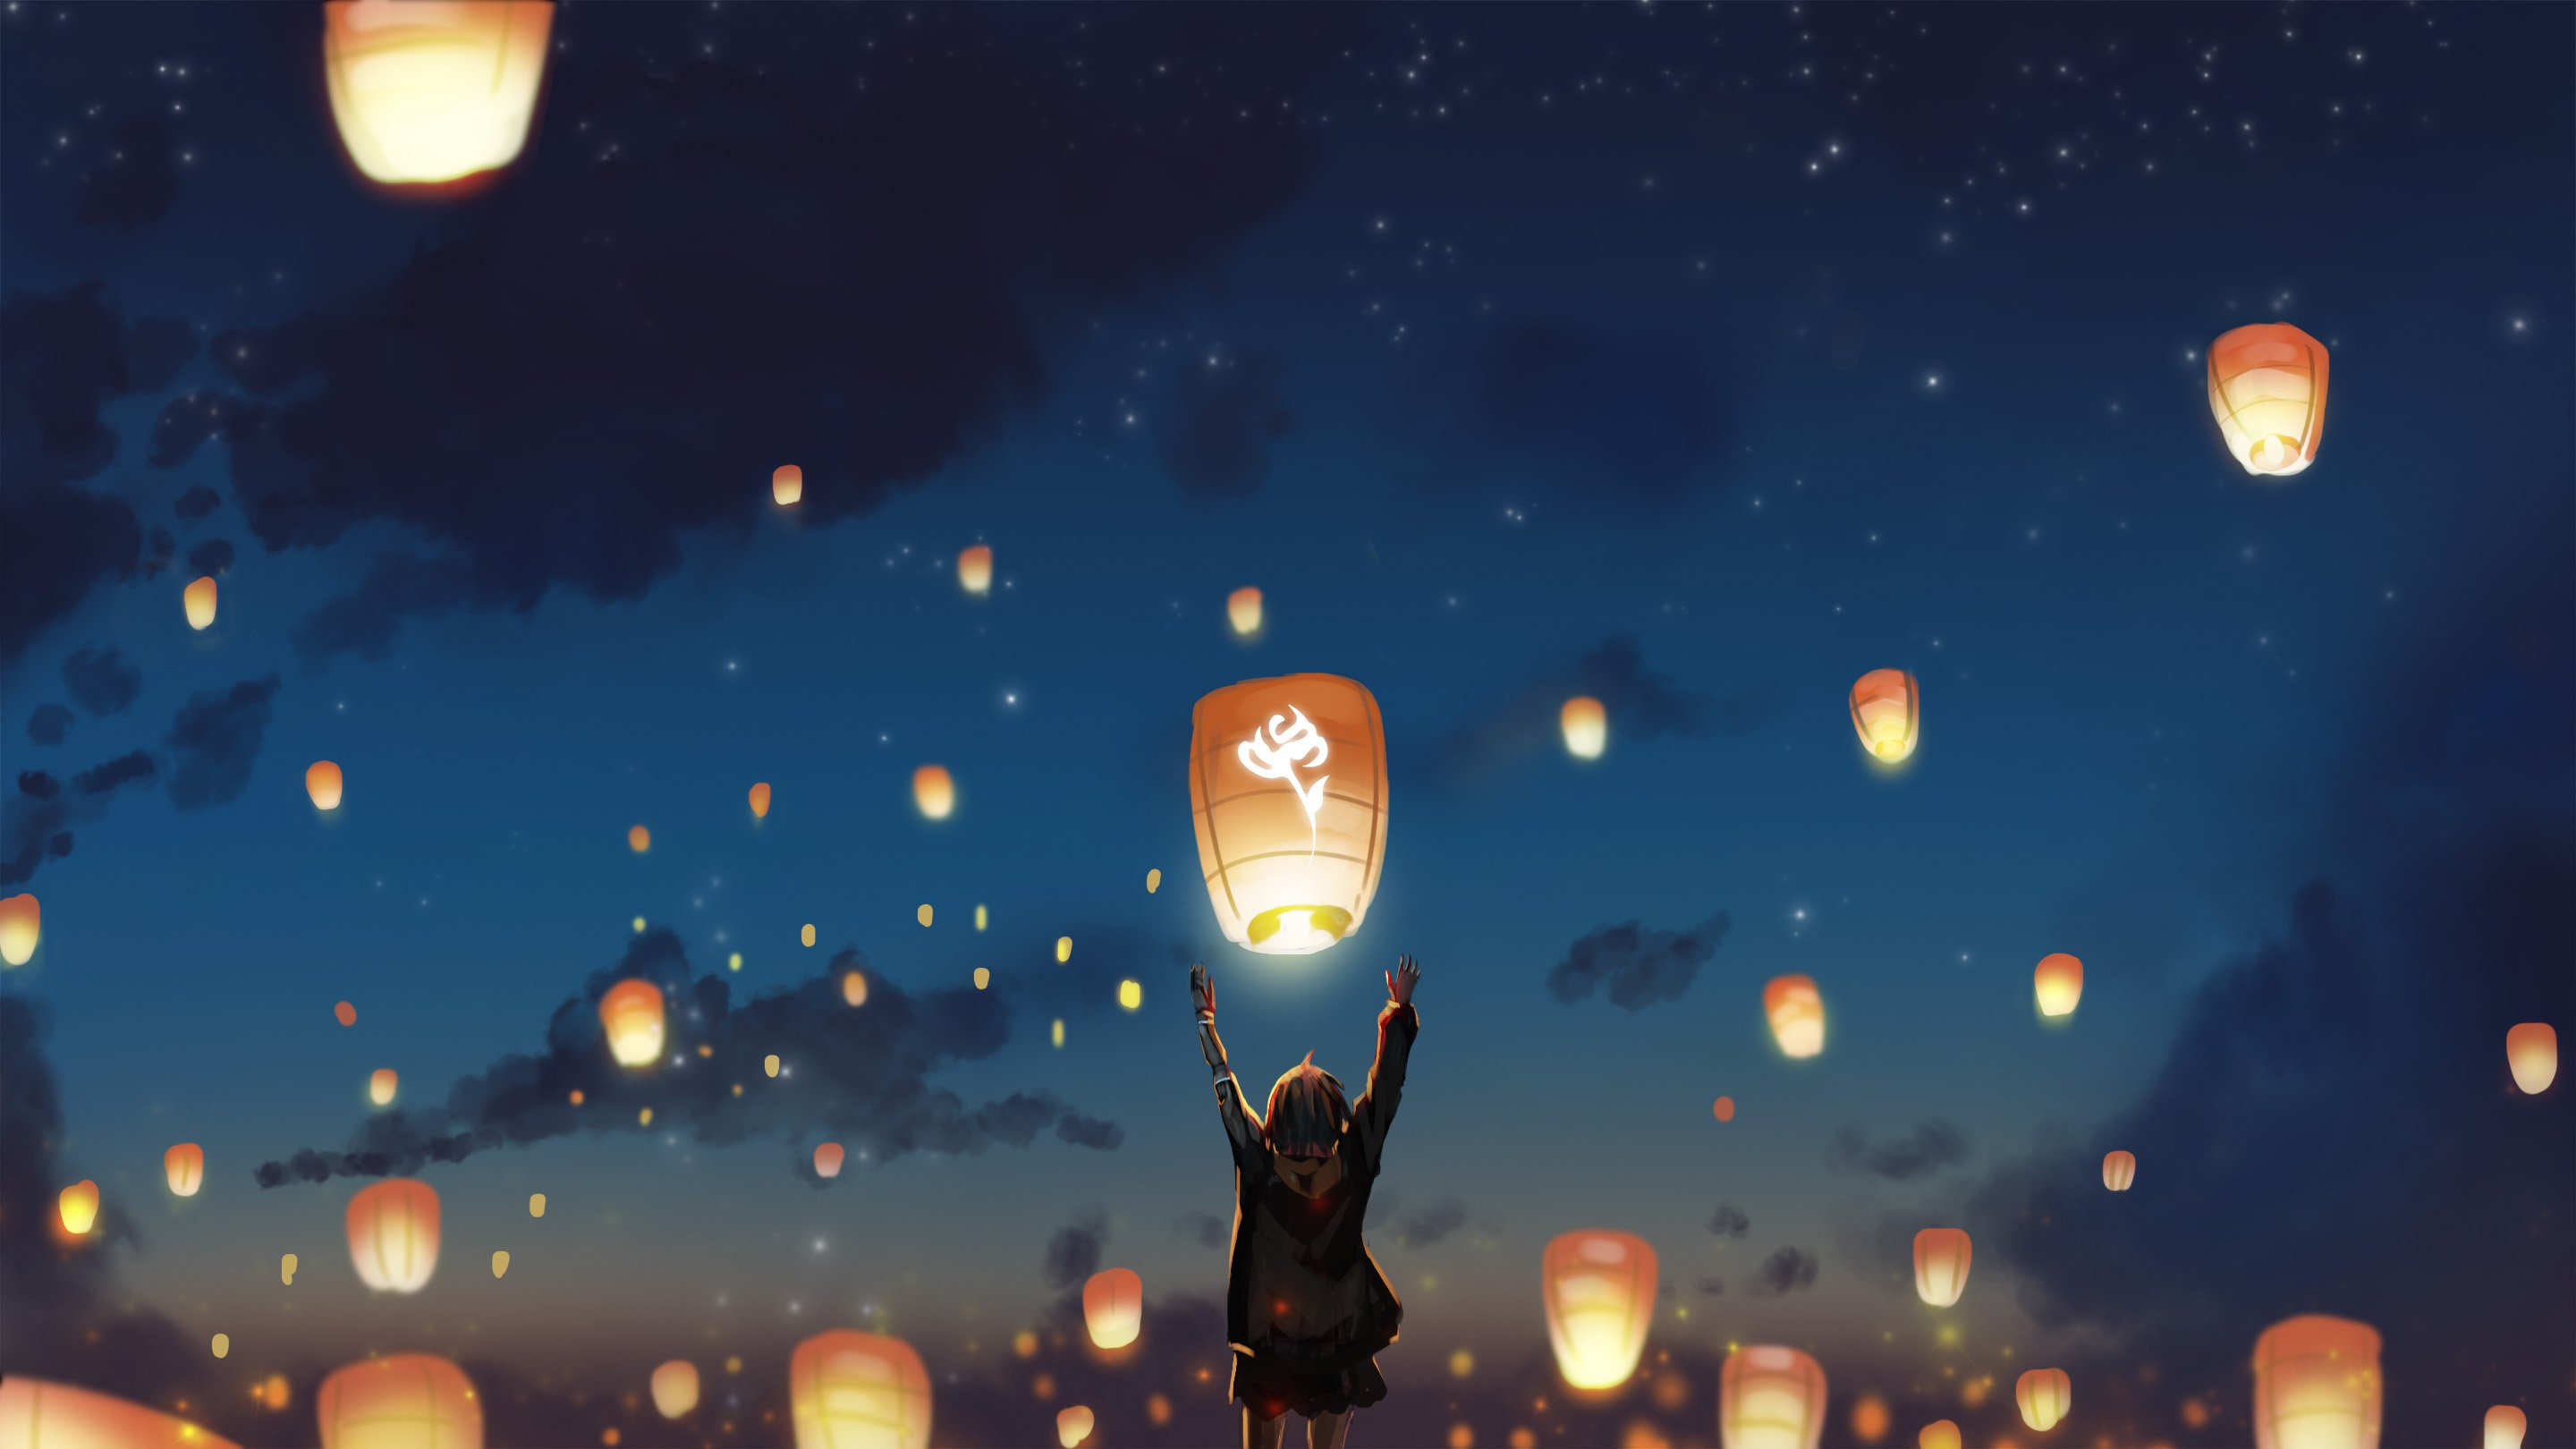 Lantern Night Clouds Lights Anime Stars Hd Anime 4k Wallpapers Images Backgrounds Photos And Pictures